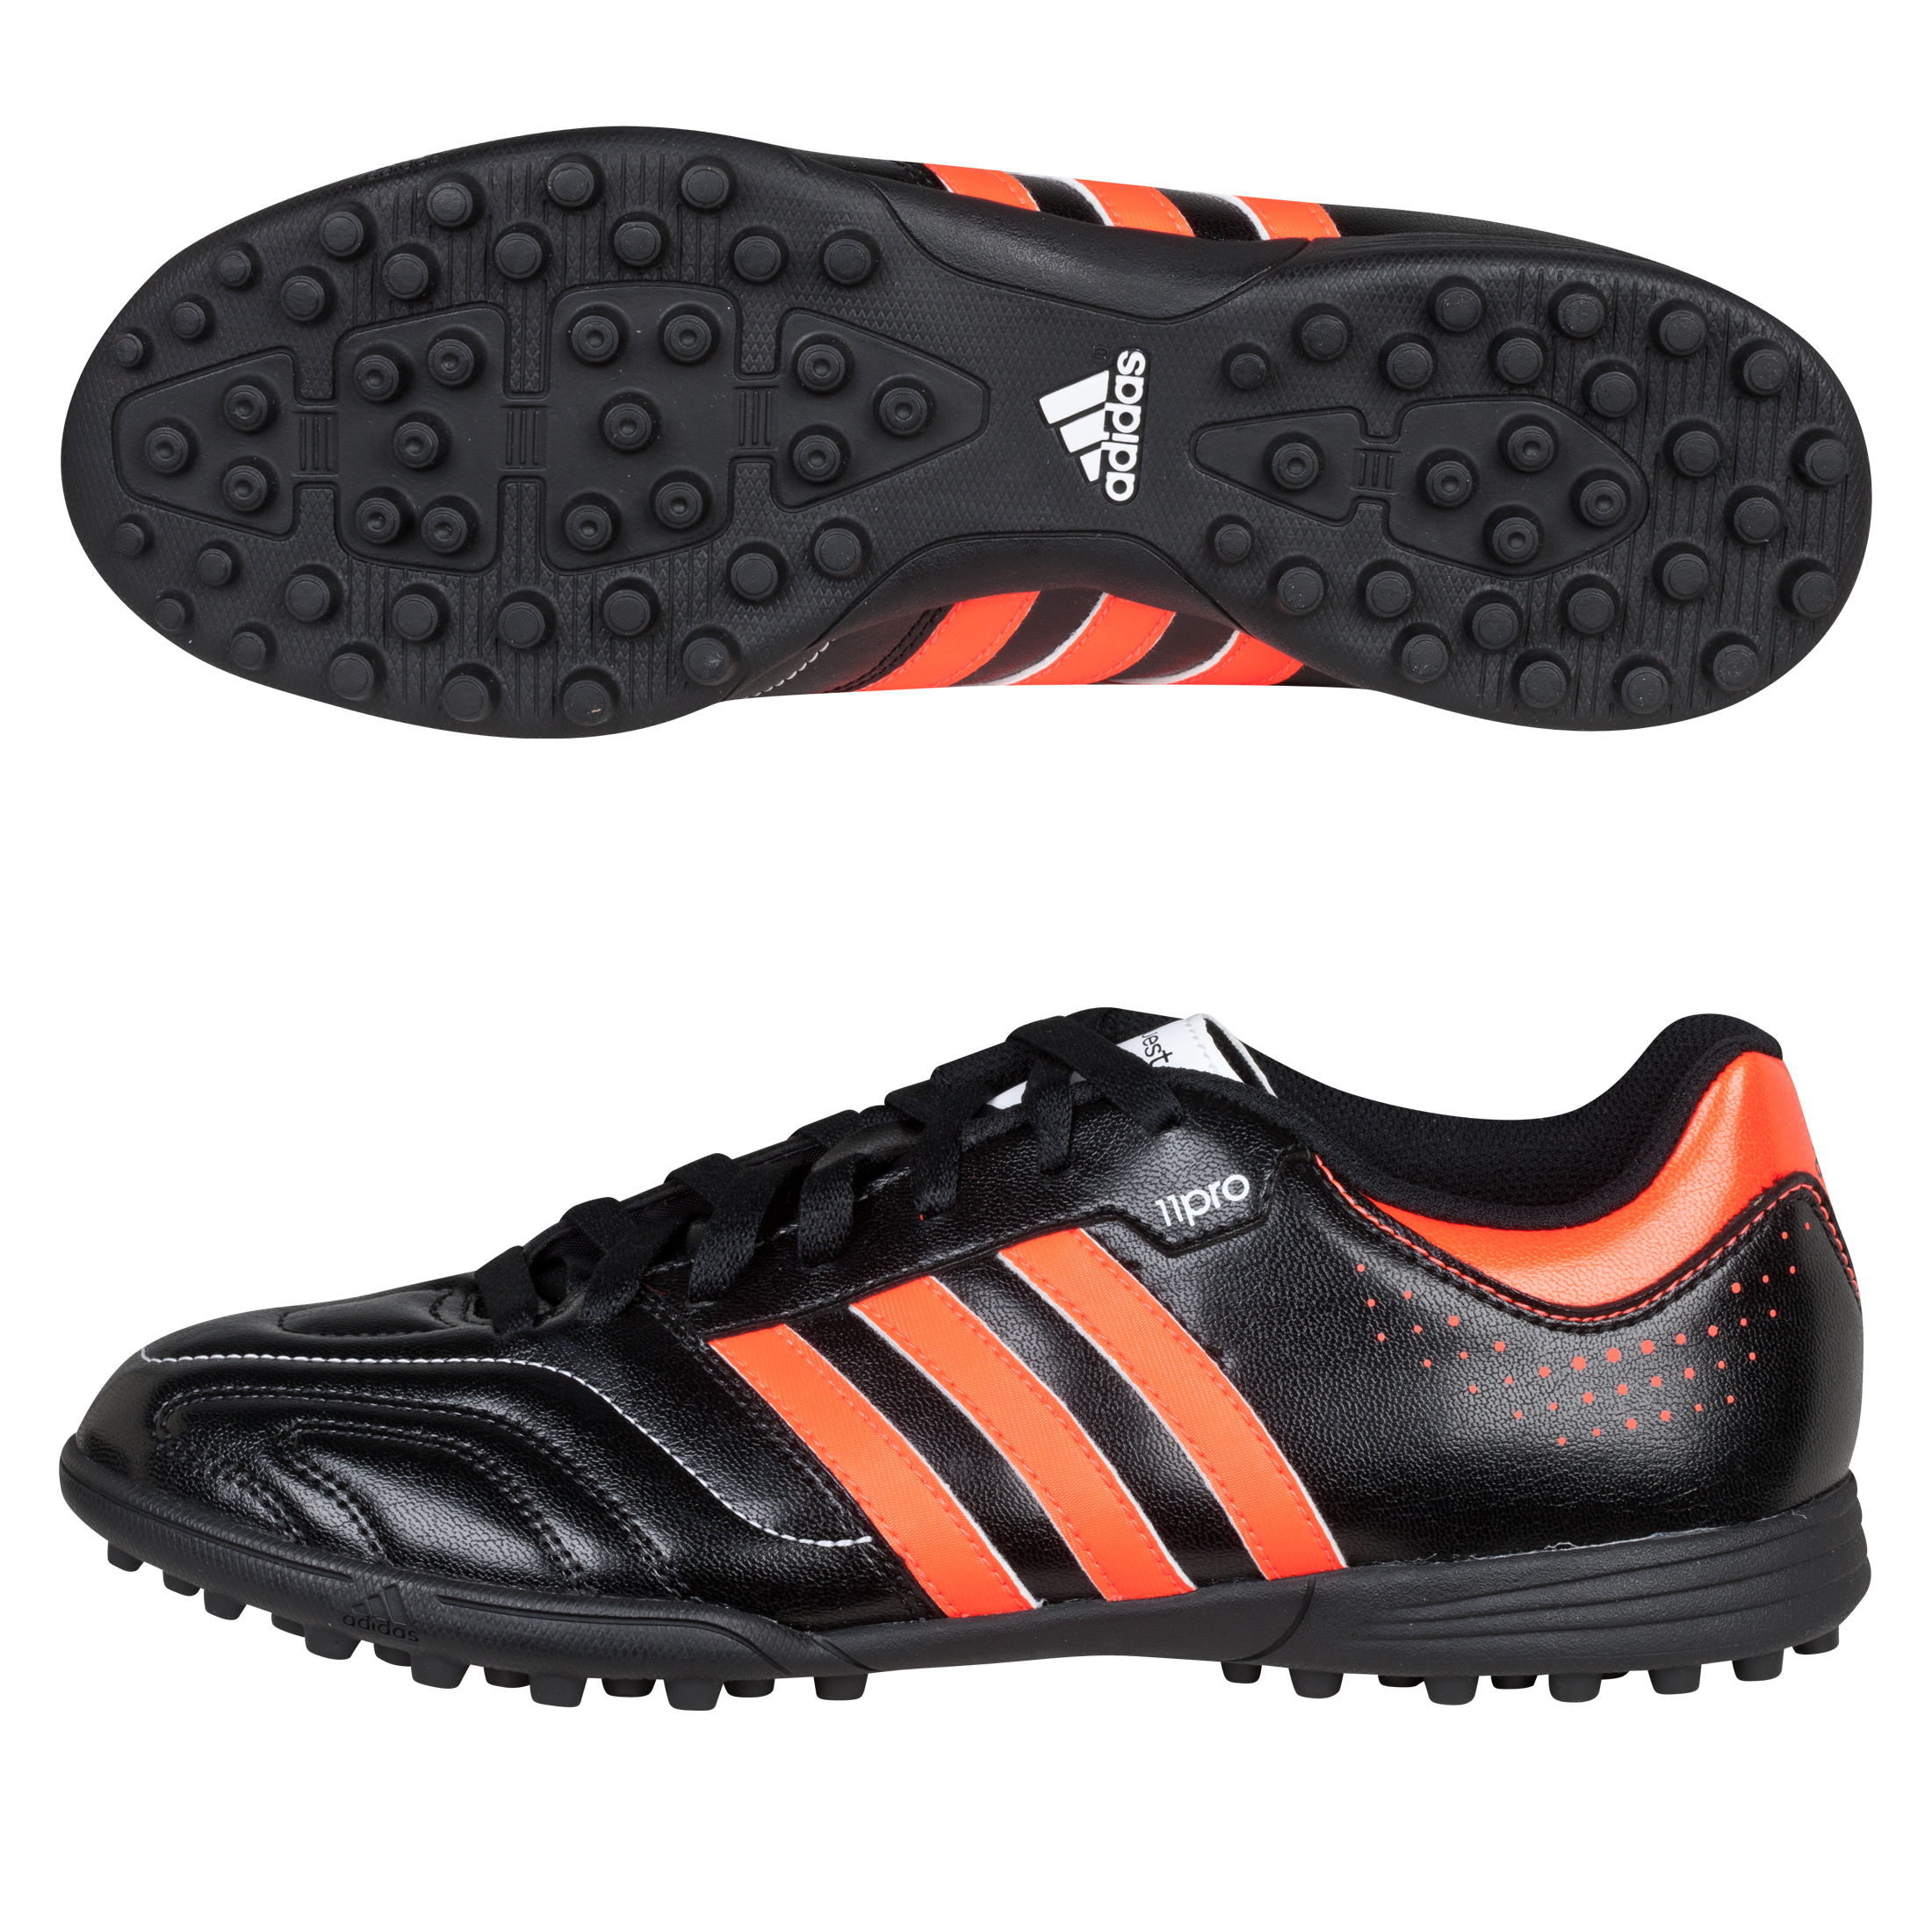 Adidas 11Questra TRX Astro Turf Trainers - Black/Infrared/White